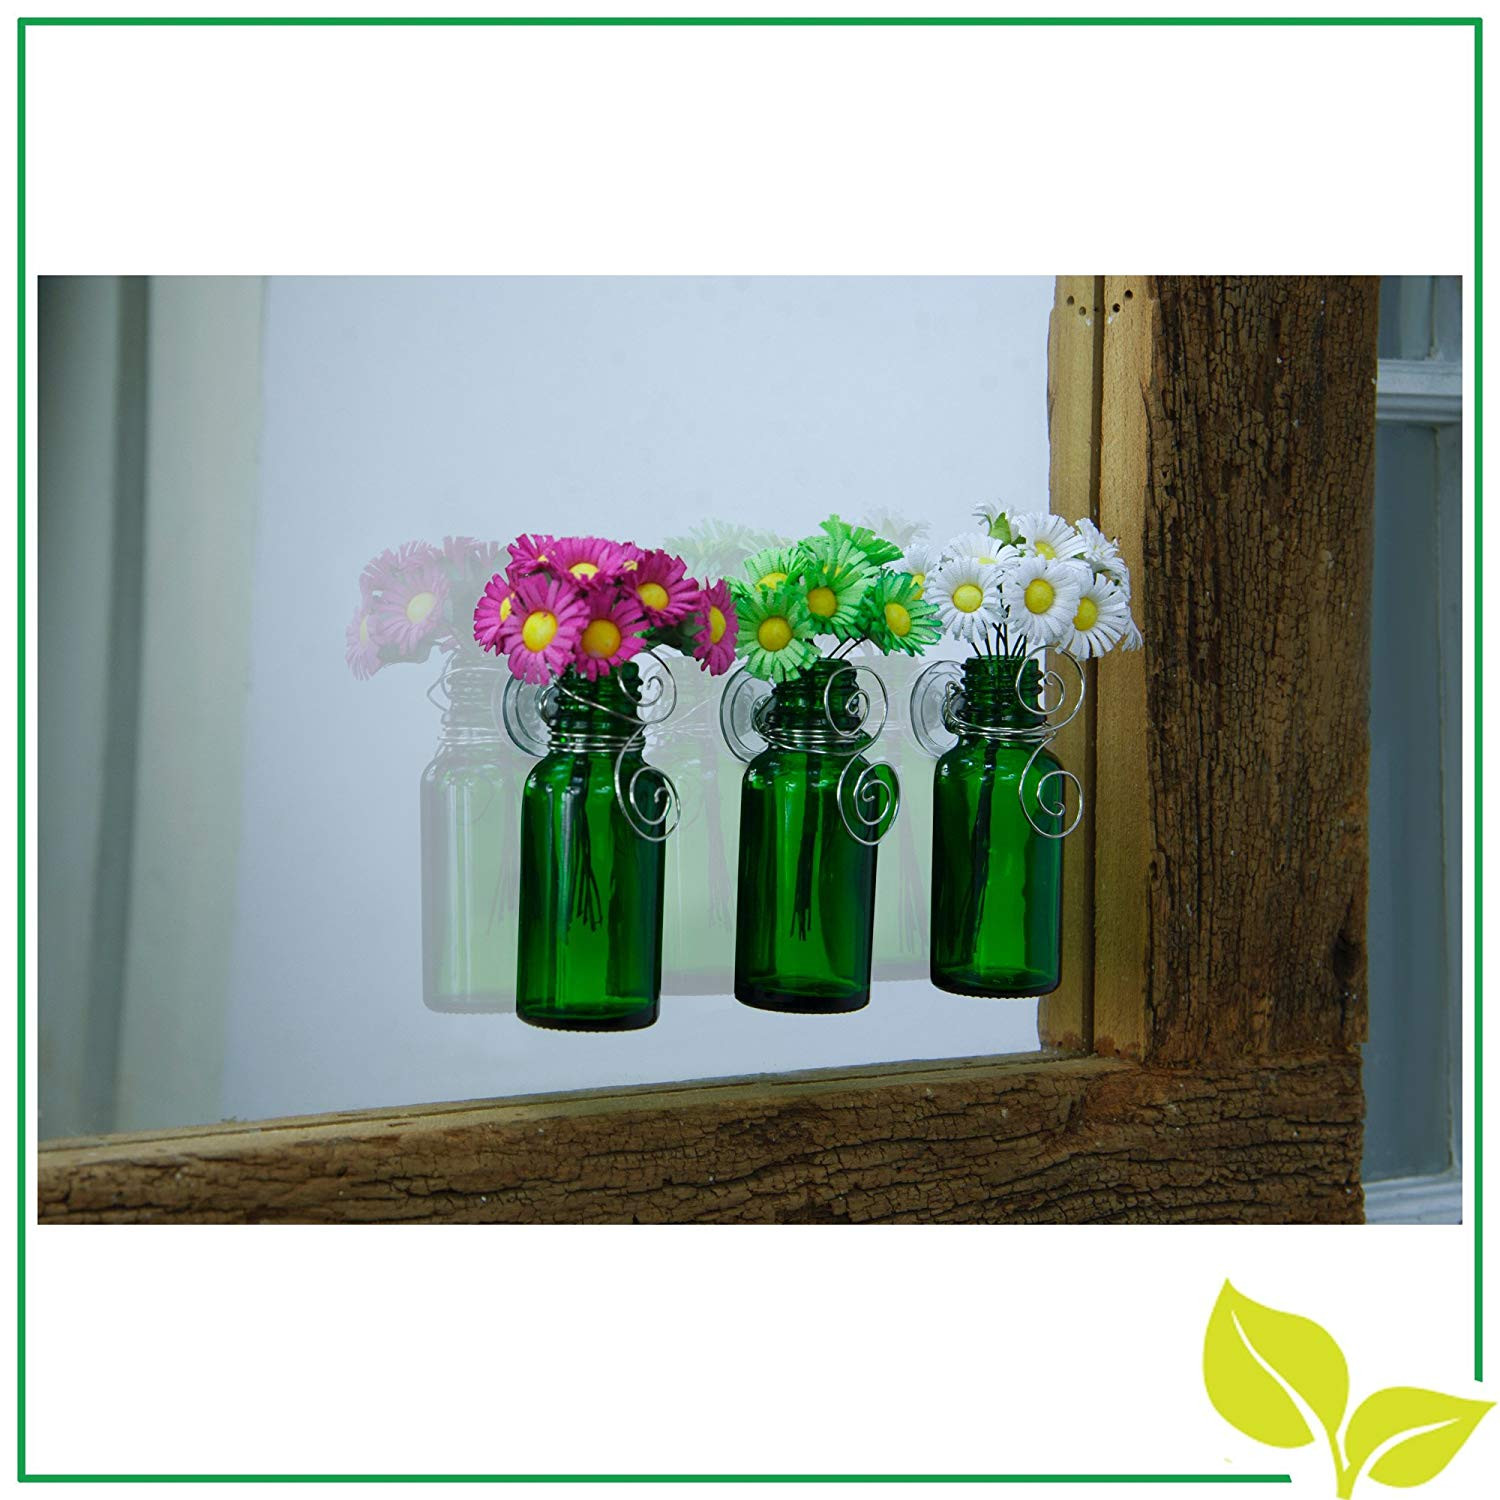 tiny glass bud vases of amazon com vazzini mini vase bouquet suction cup bud bottle with amazon com vazzini mini vase bouquet suction cup bud bottle holder with flowers decorative for window mirrors tile wedding party favor get well